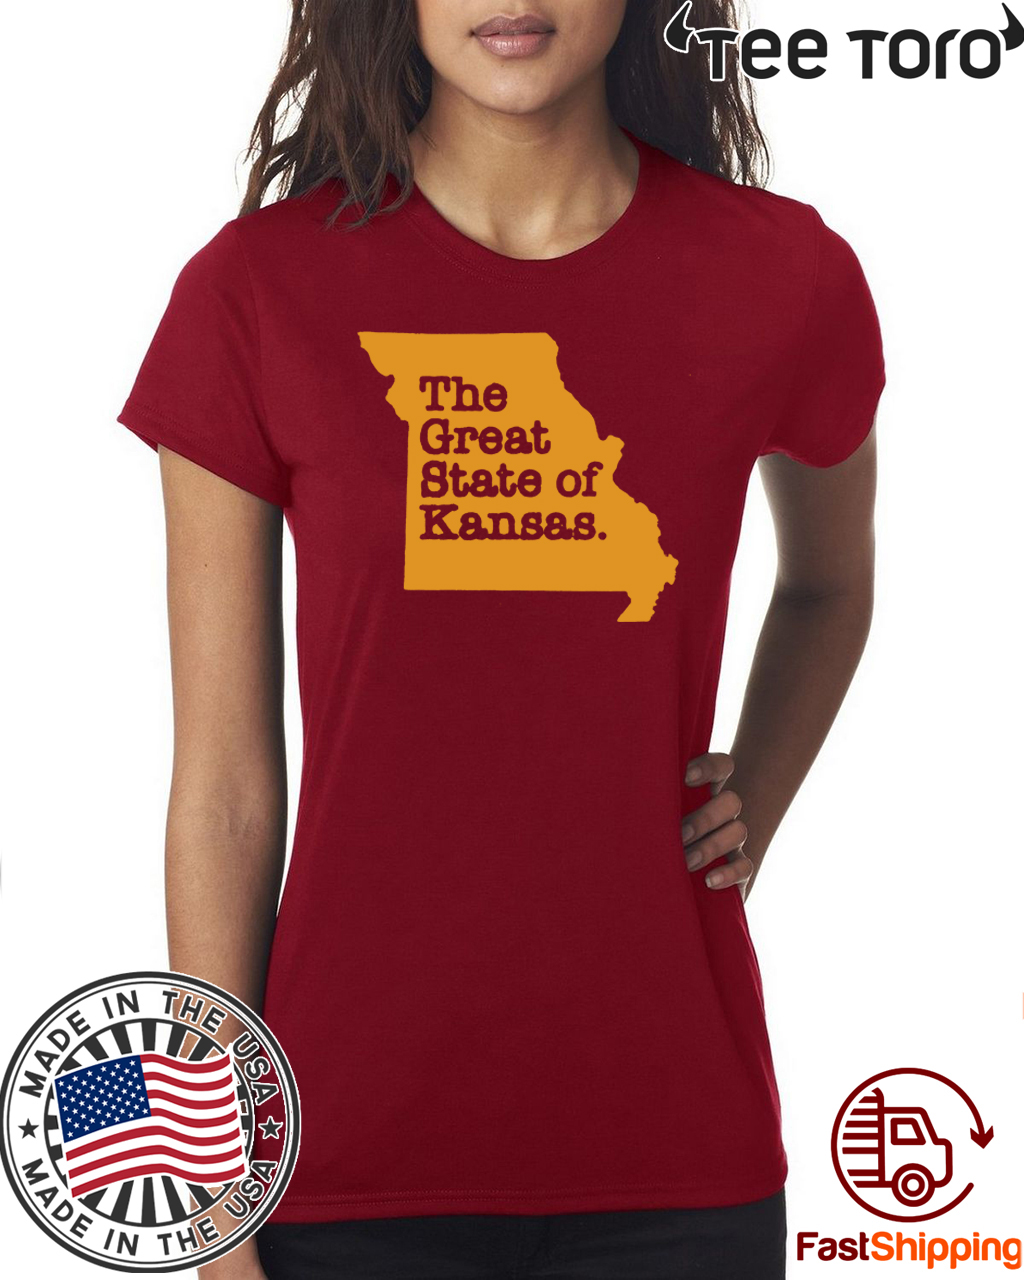 The Great State of Kansas or Missouri Official T-Shirt